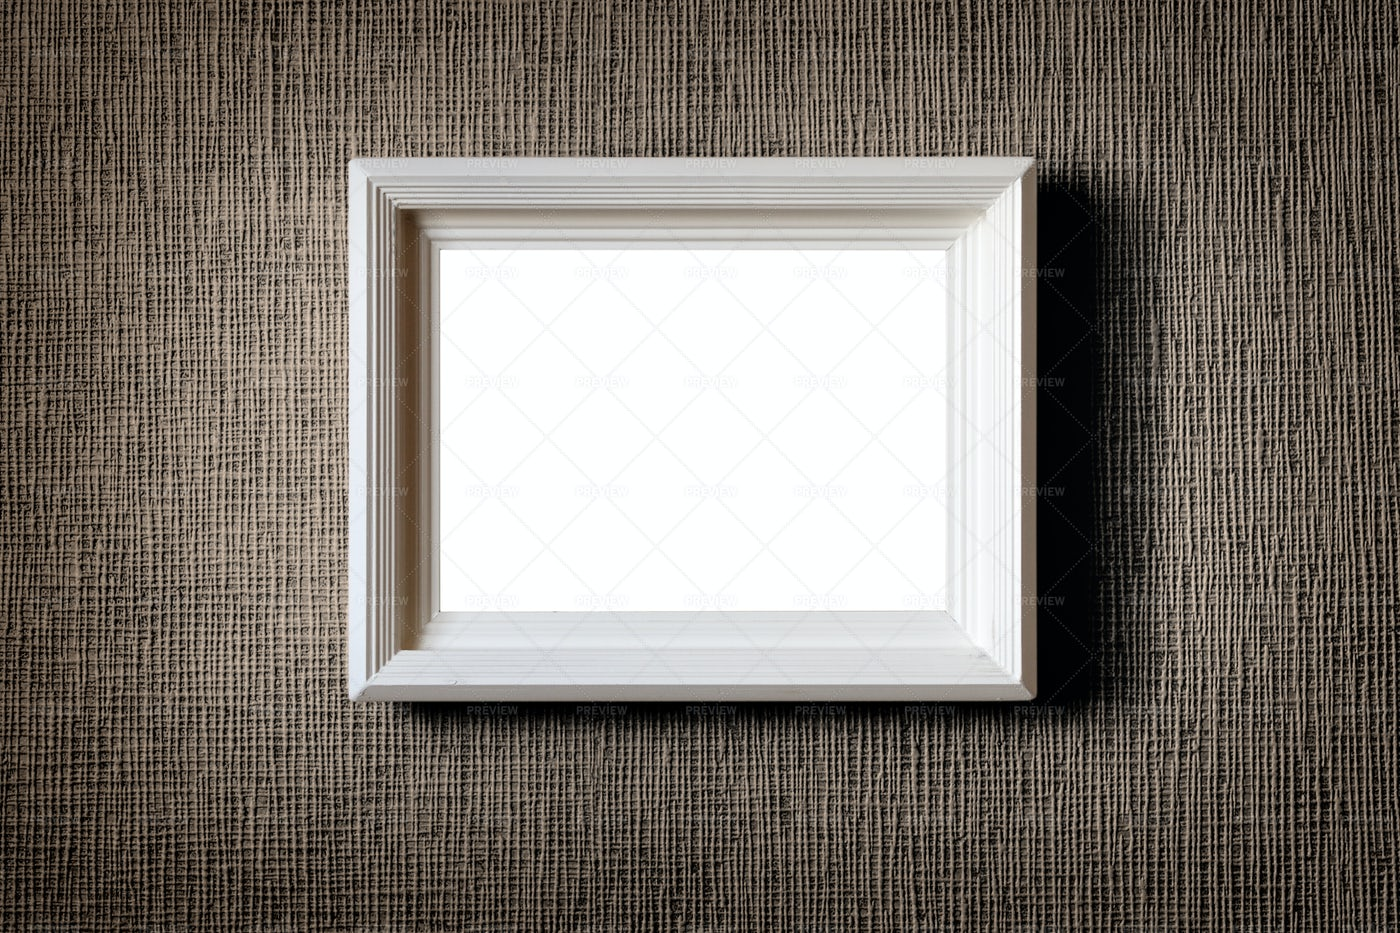 Old Wooden Picture Frame On Wall: Stock Photos